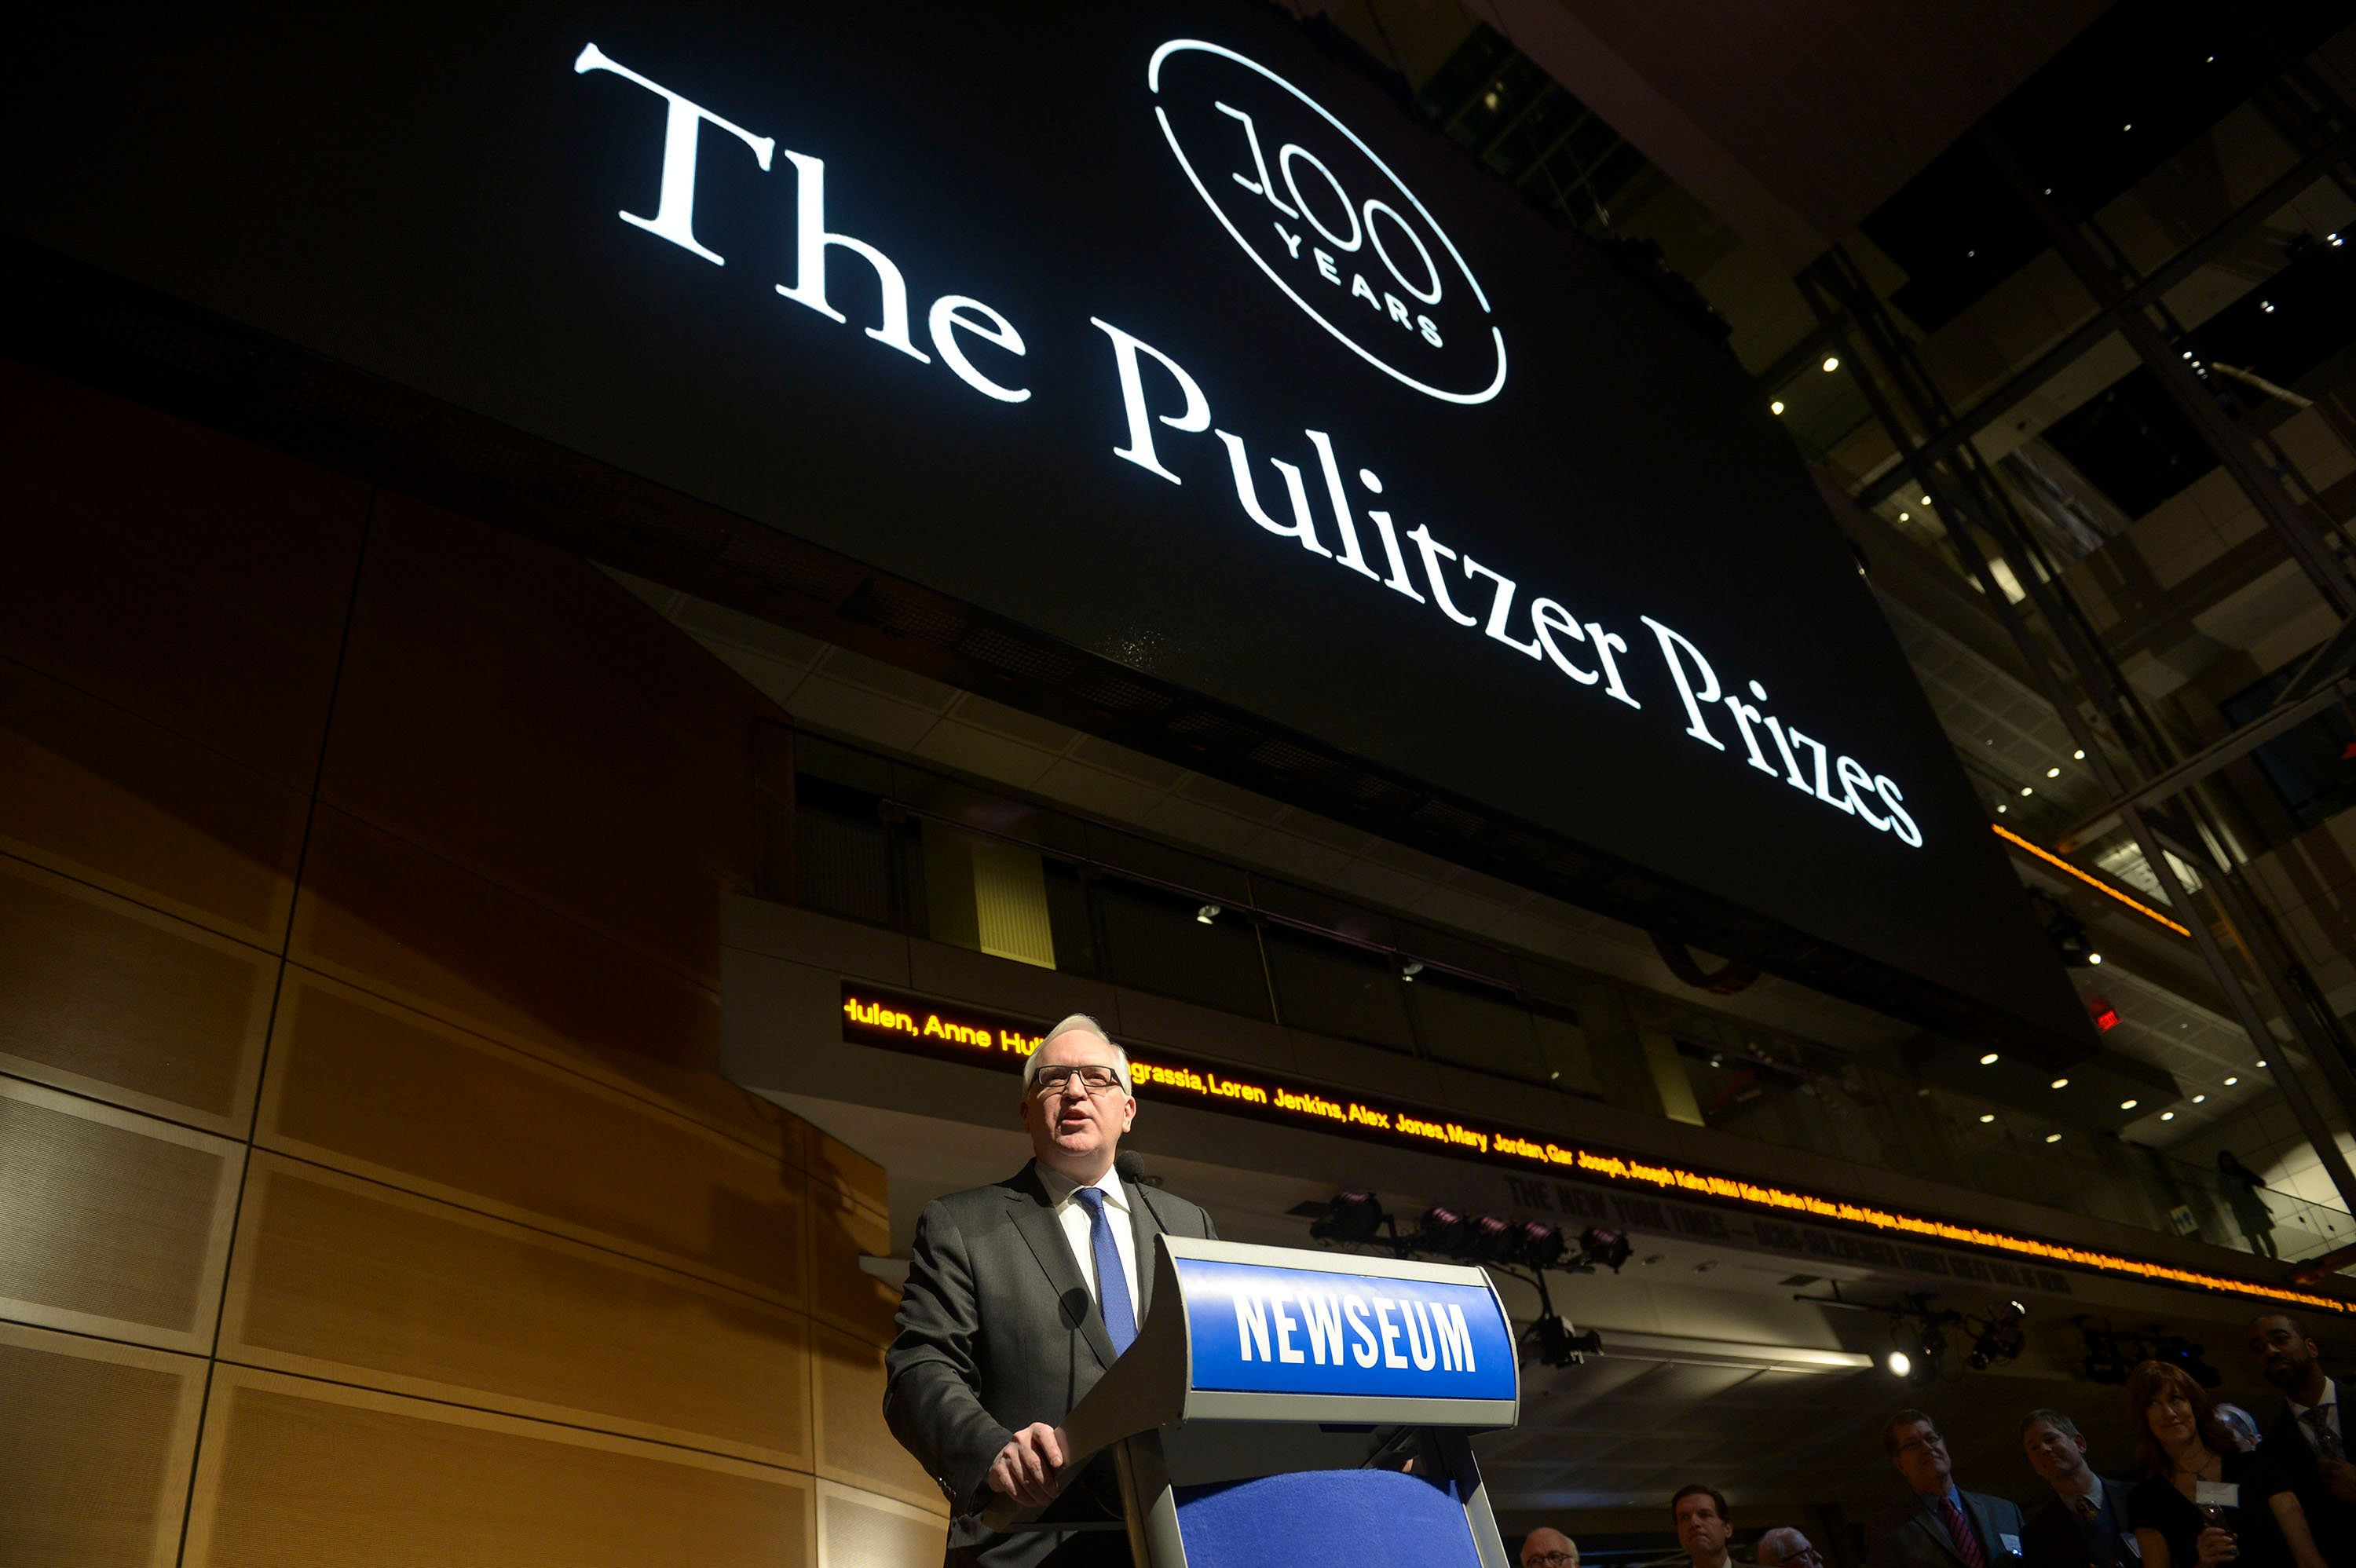 WASHINGTON, DC - JANUARY 28: Paul Gigot, Pulitzer Prize Board Chair and Editorial Page Director, The Wall Street Journal, makes opneing remarks during the Centennial Celebration of Pulitzer Prizes at The Newseum on January 28, 2016 in Washington, DC.  (Photo by Leigh Vogel/Getty Images)